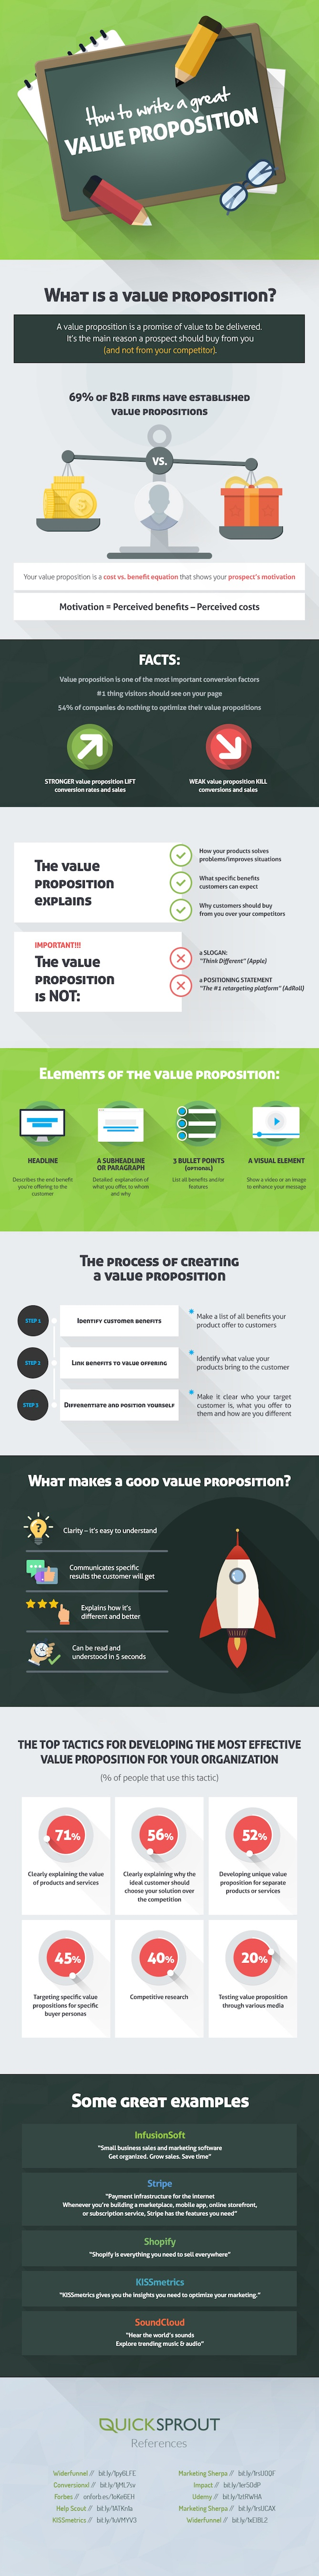 value-proposition-infographic